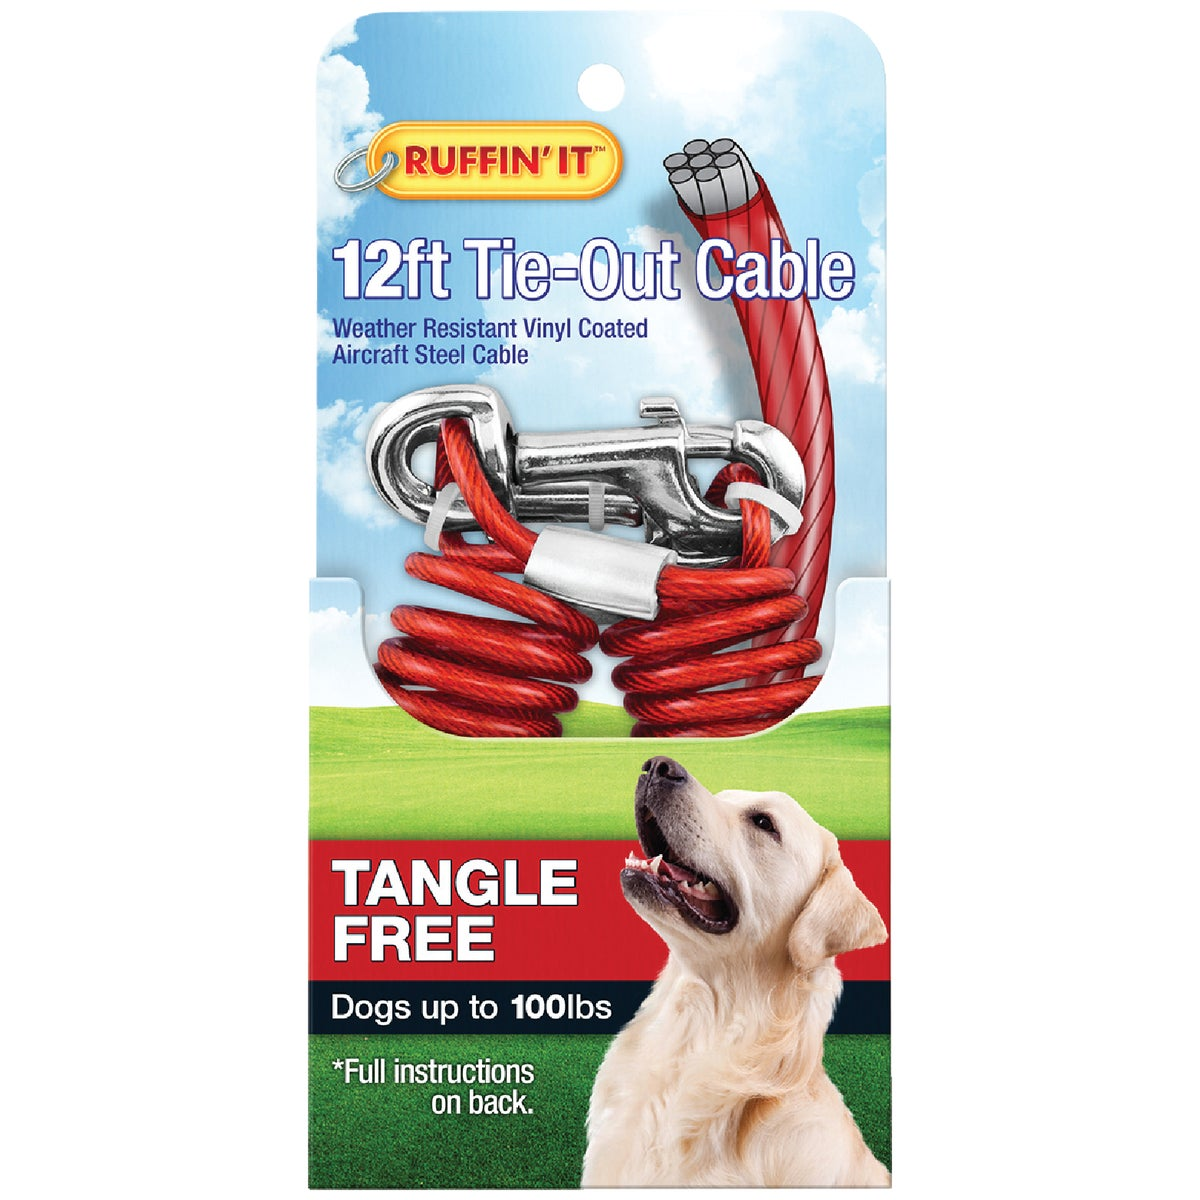 Westminster Pet 12'TNGL FRE TIEOUT CABLE 29712